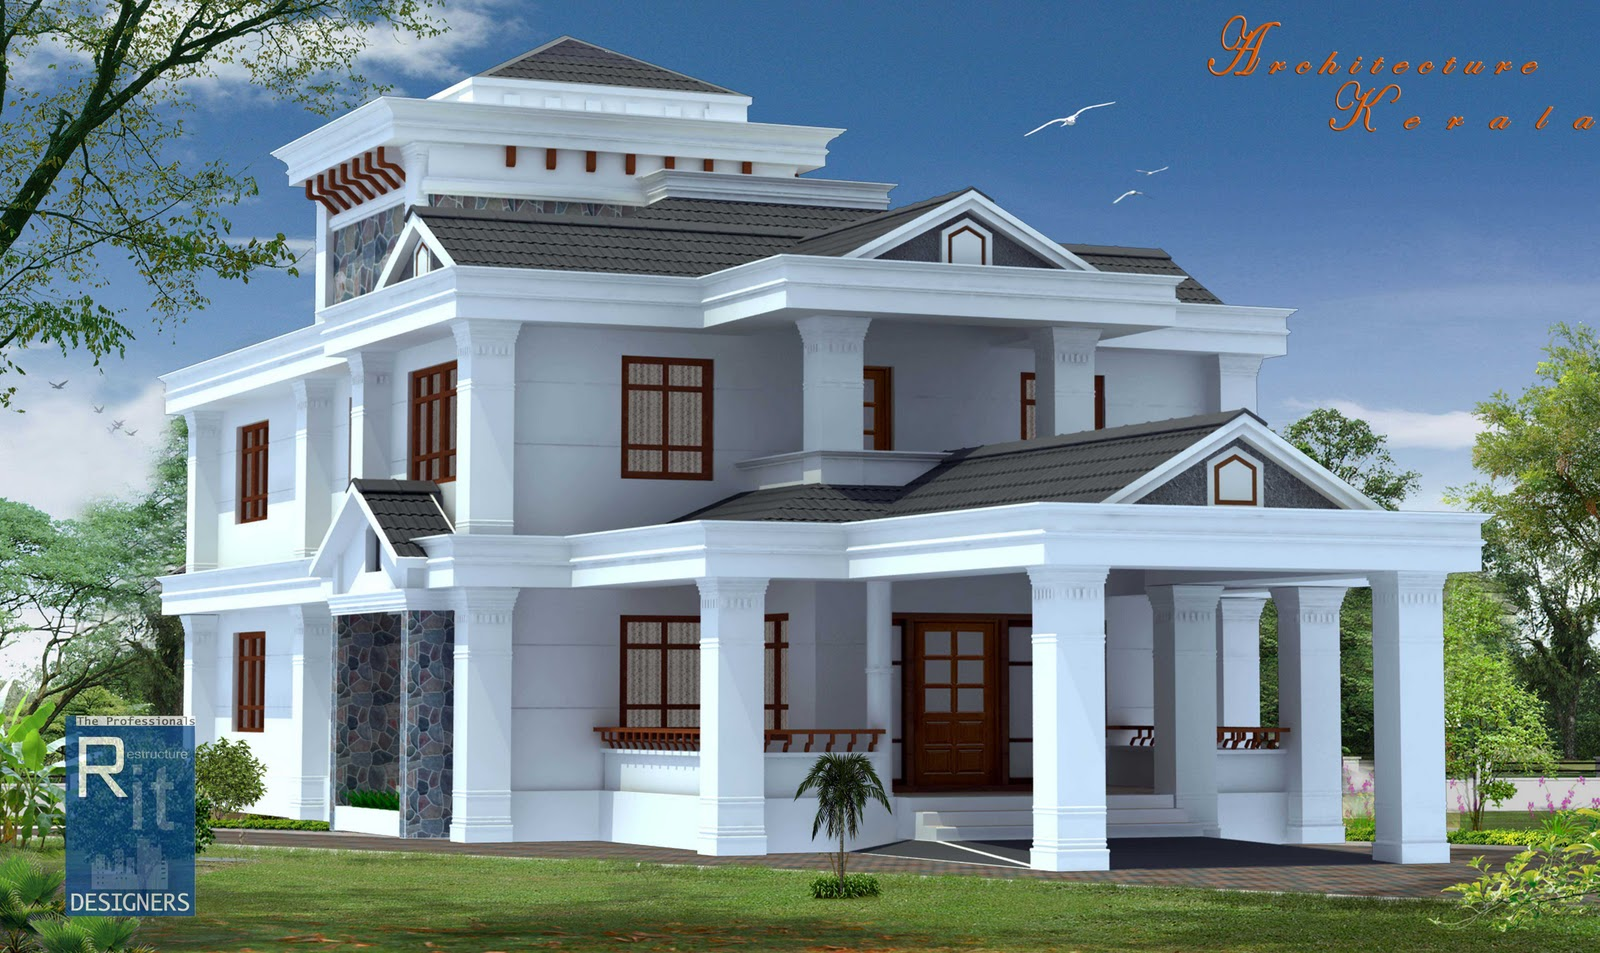 Architecture Kerala: 4 BED ROOM KERALA HOUSE